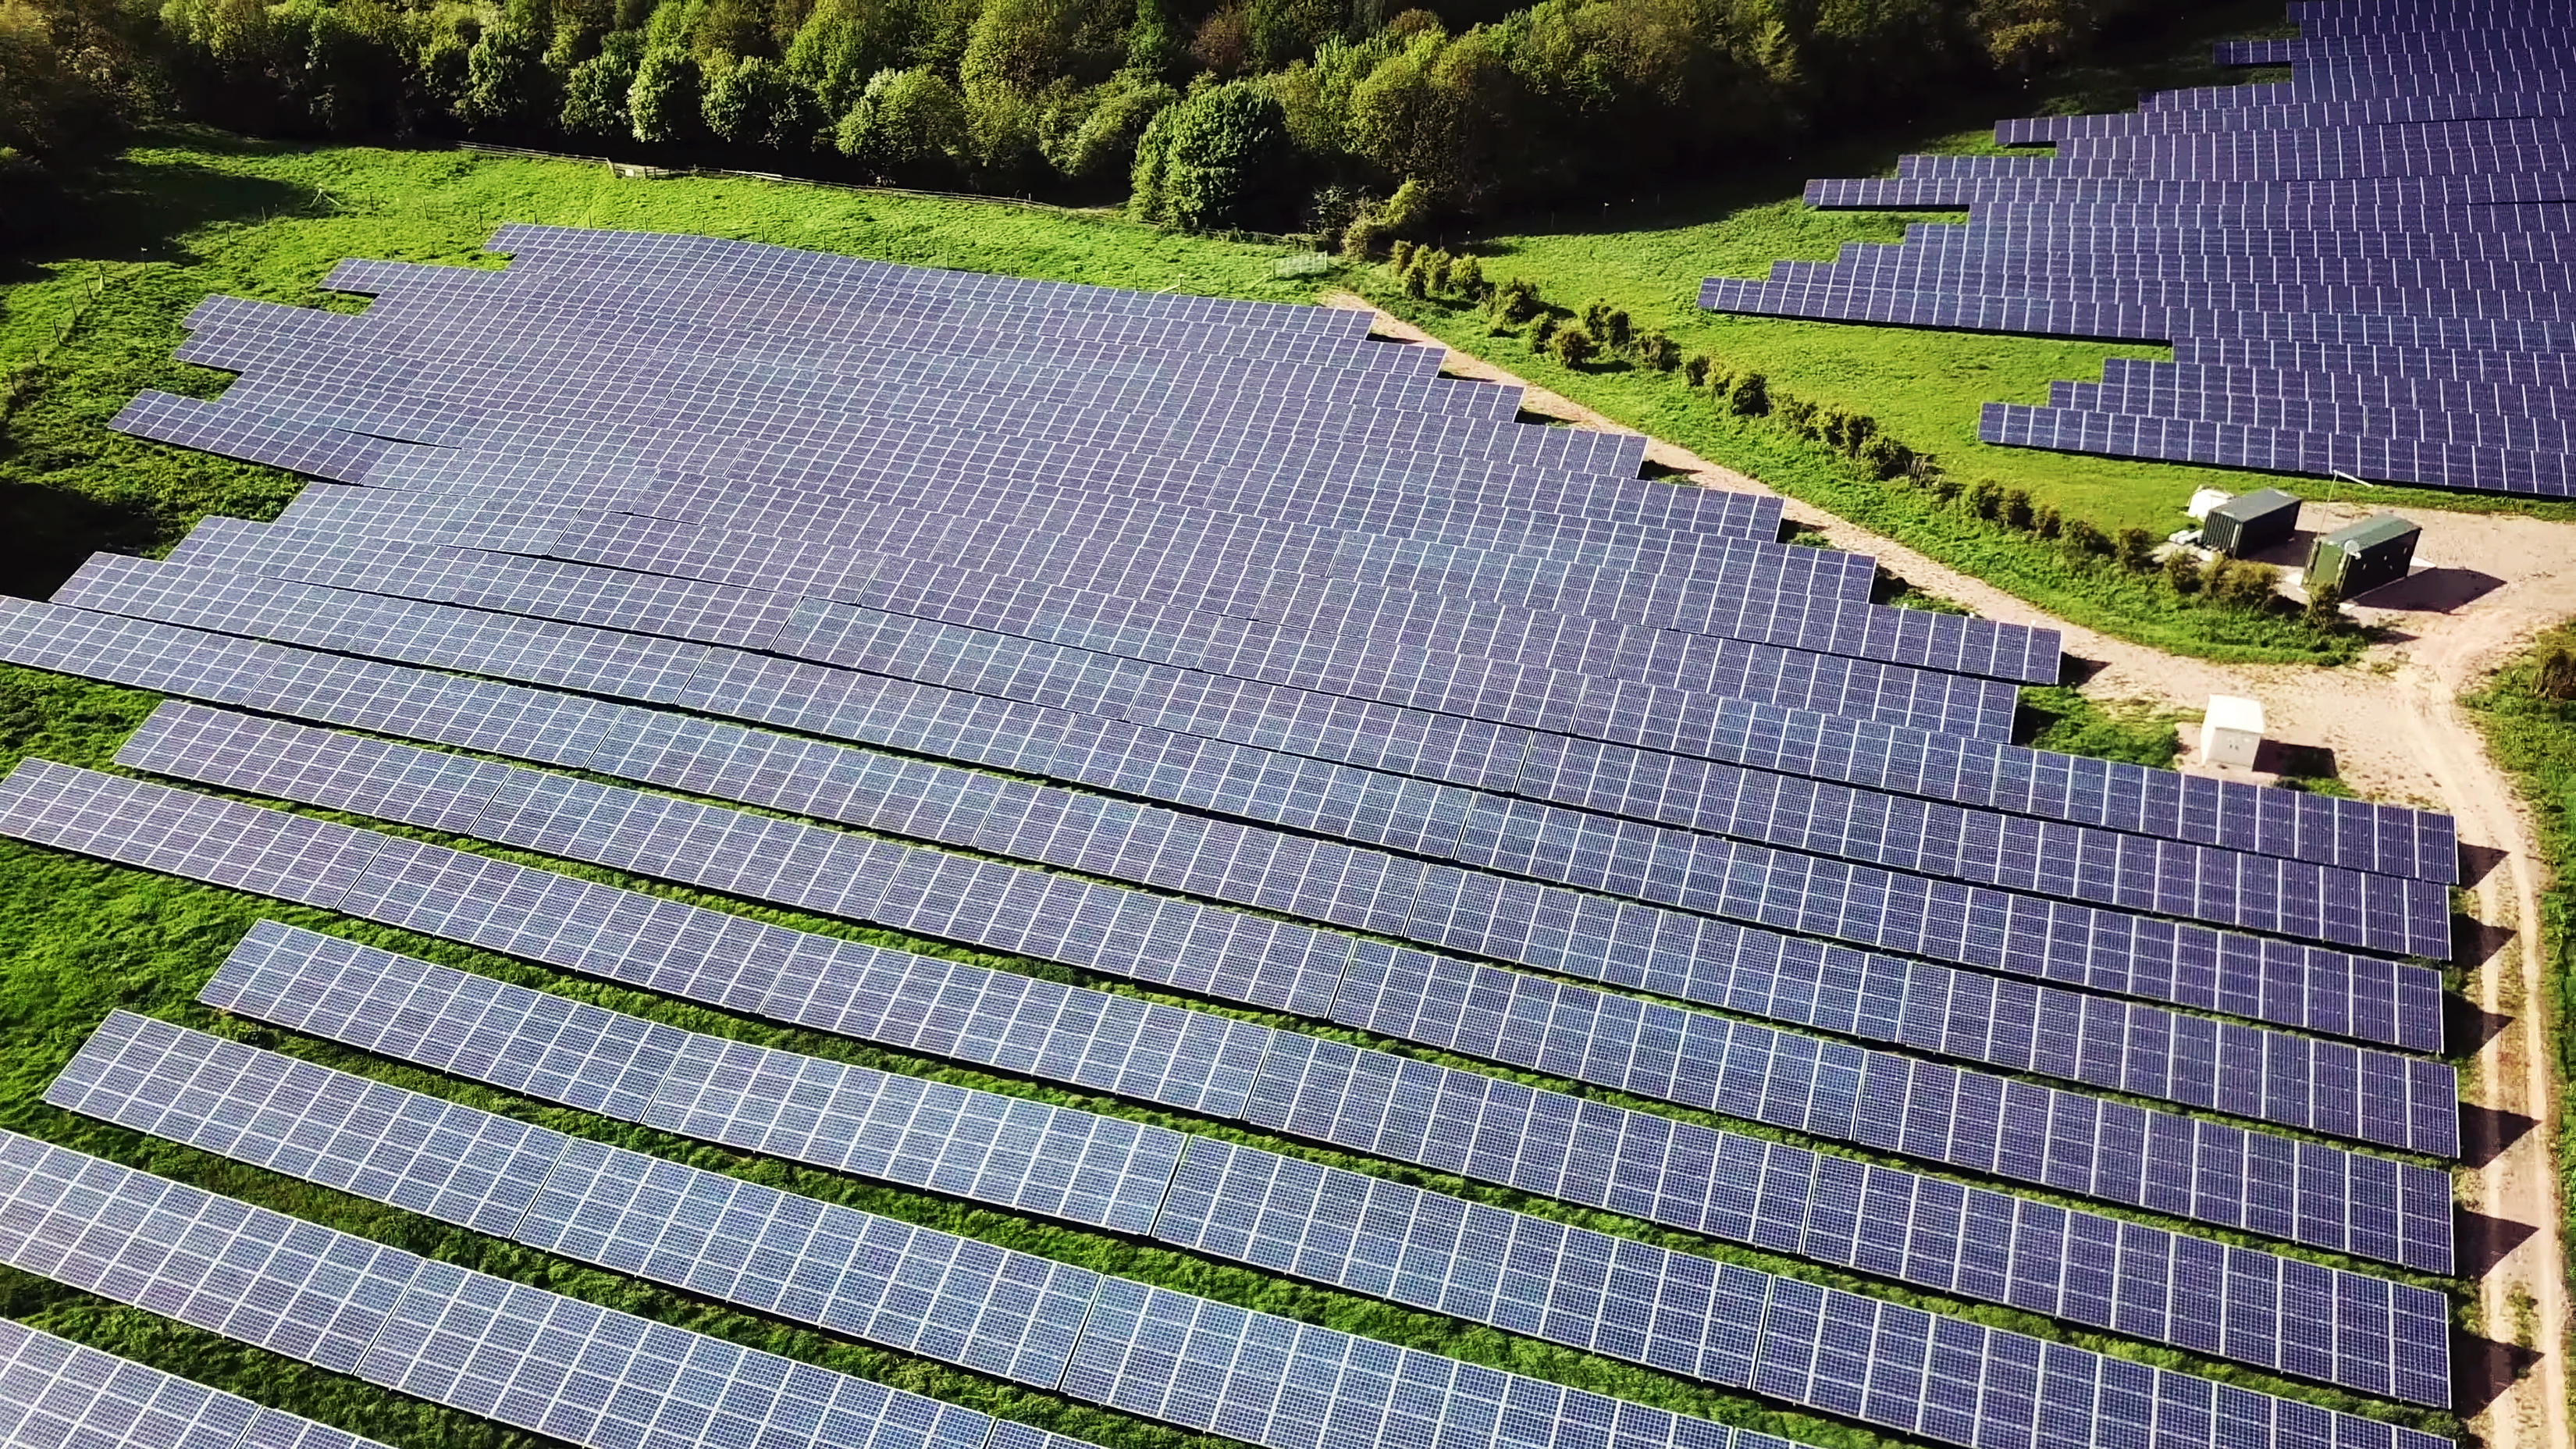 Aerial view of a solar power station